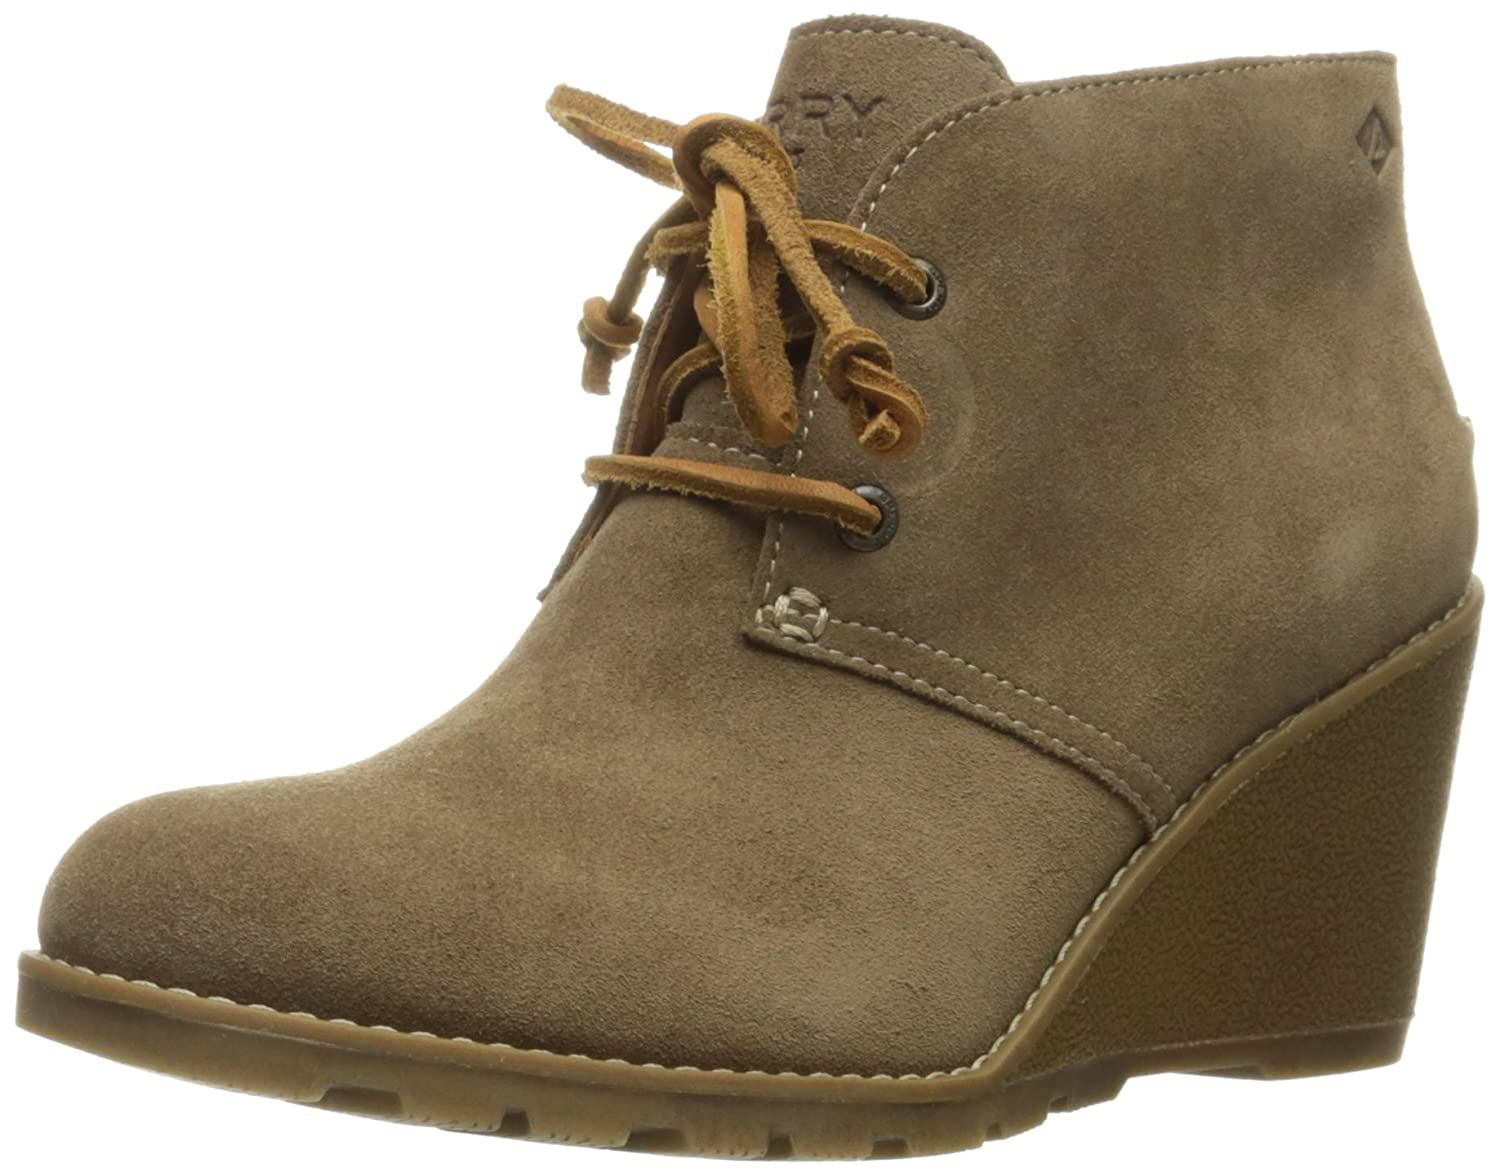 Sperry Top-Sider Women's Stella Prow Ankle Bootie B019X3VCTC 8.5 B(M) US|Taupe